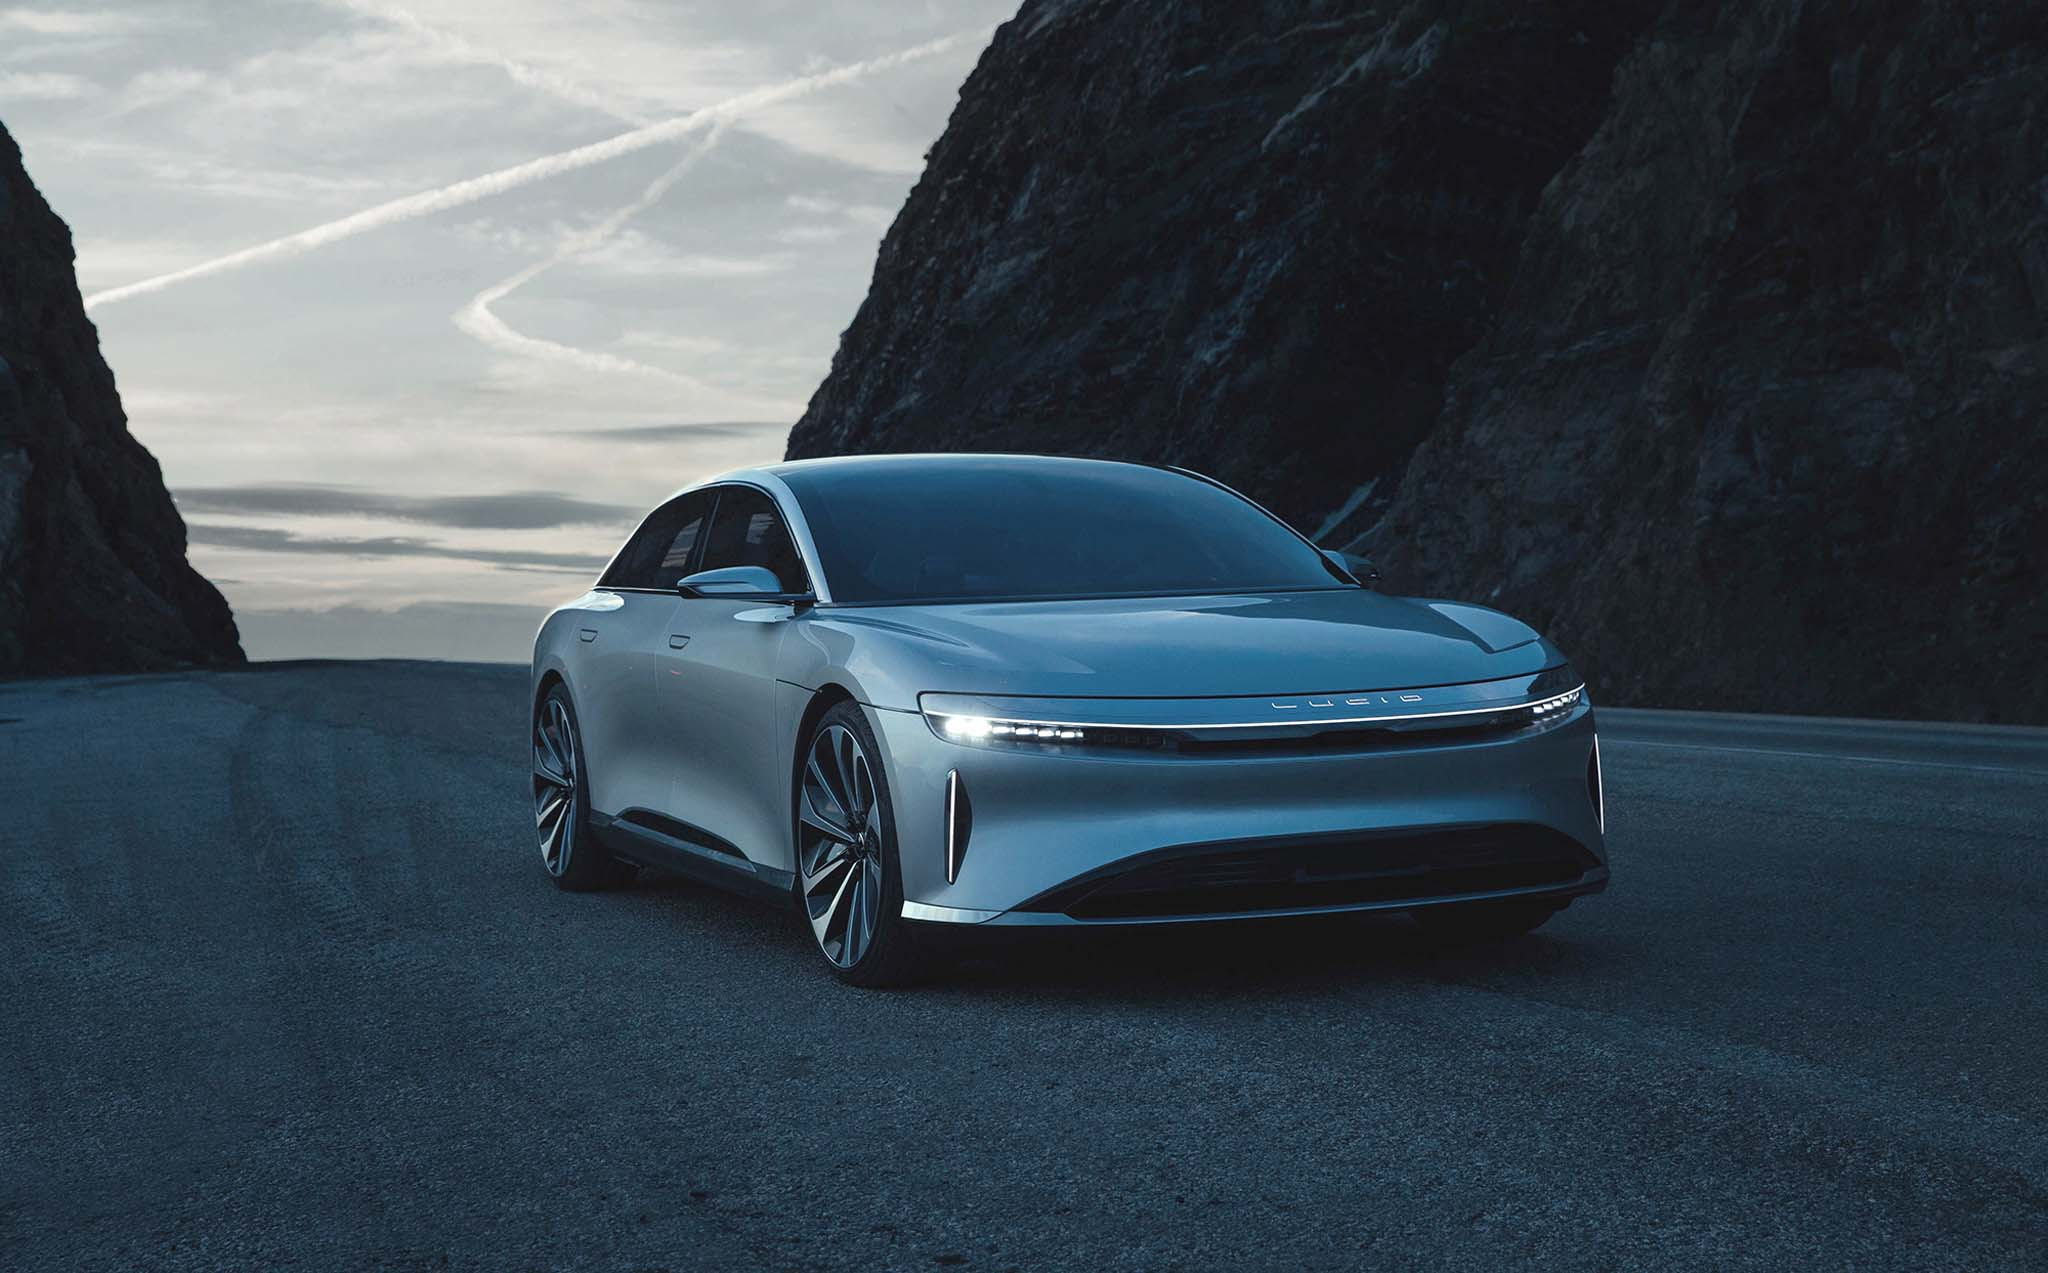 Lucid Air Sedan Hits 235 MPH in New Video | Automobile ...